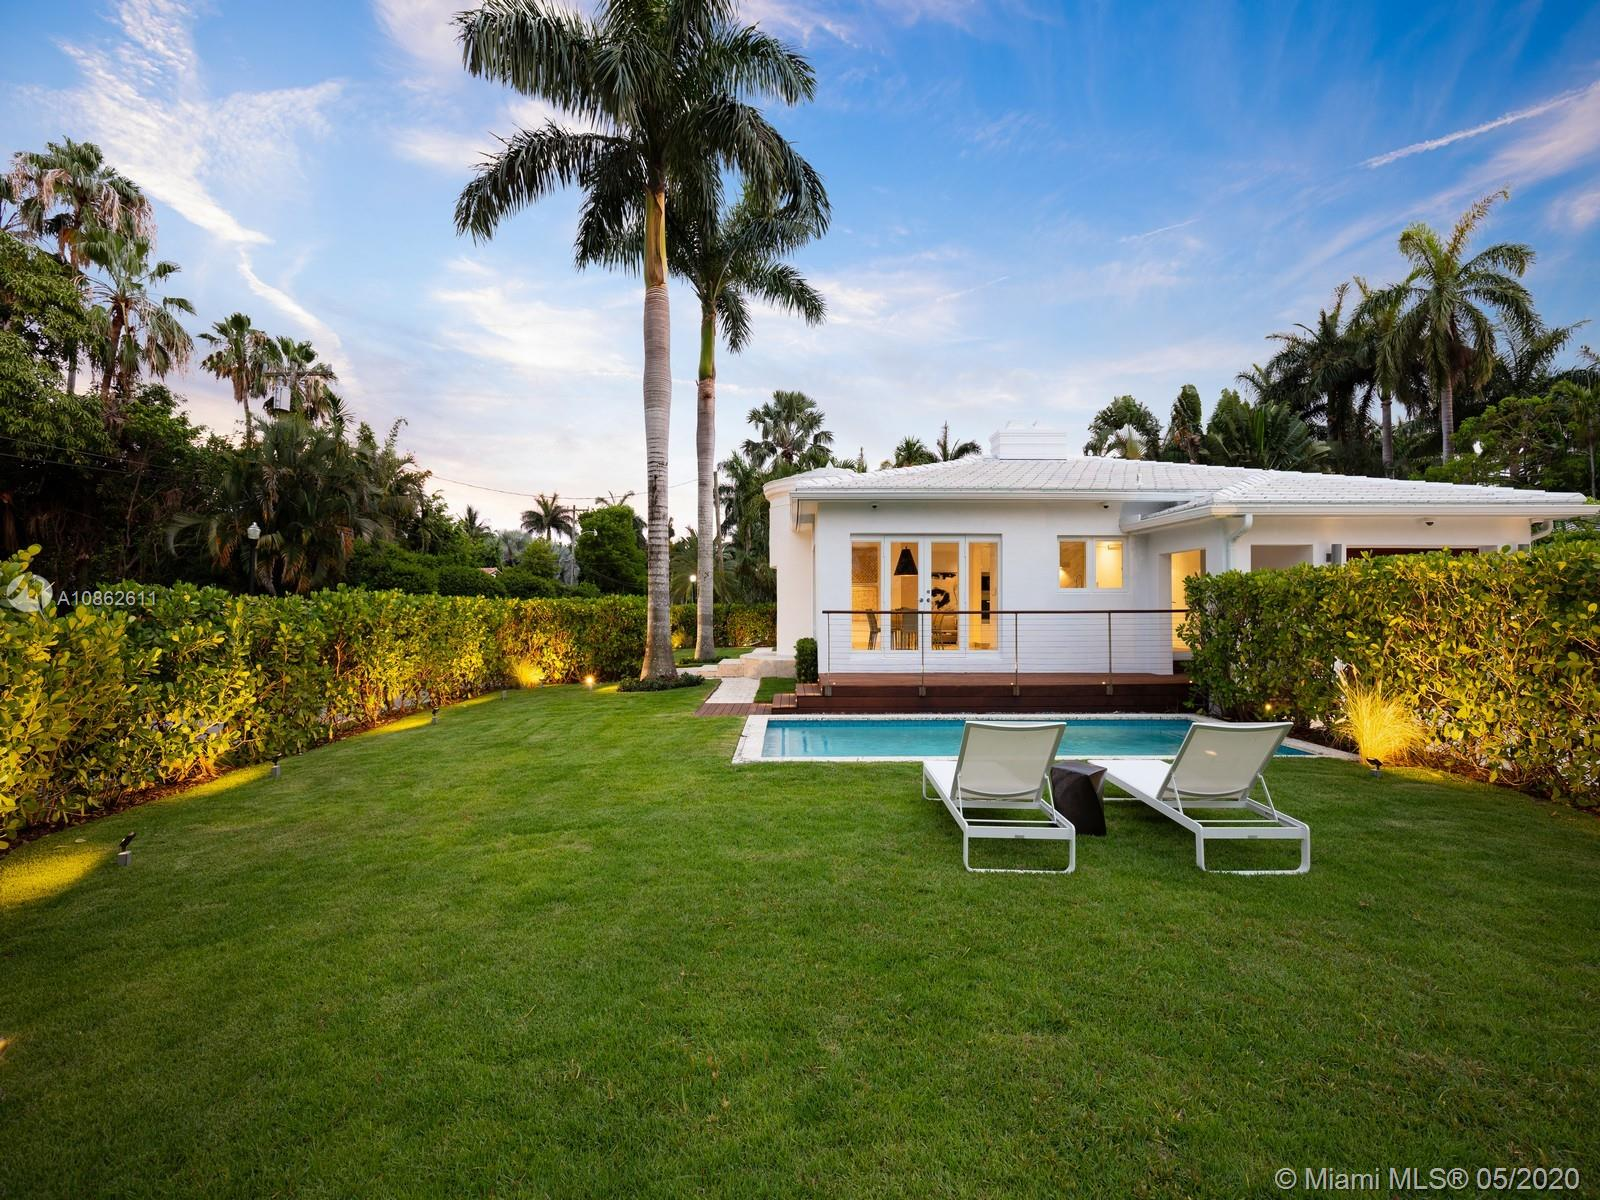 Listing A10862611 - Large Photo # 23